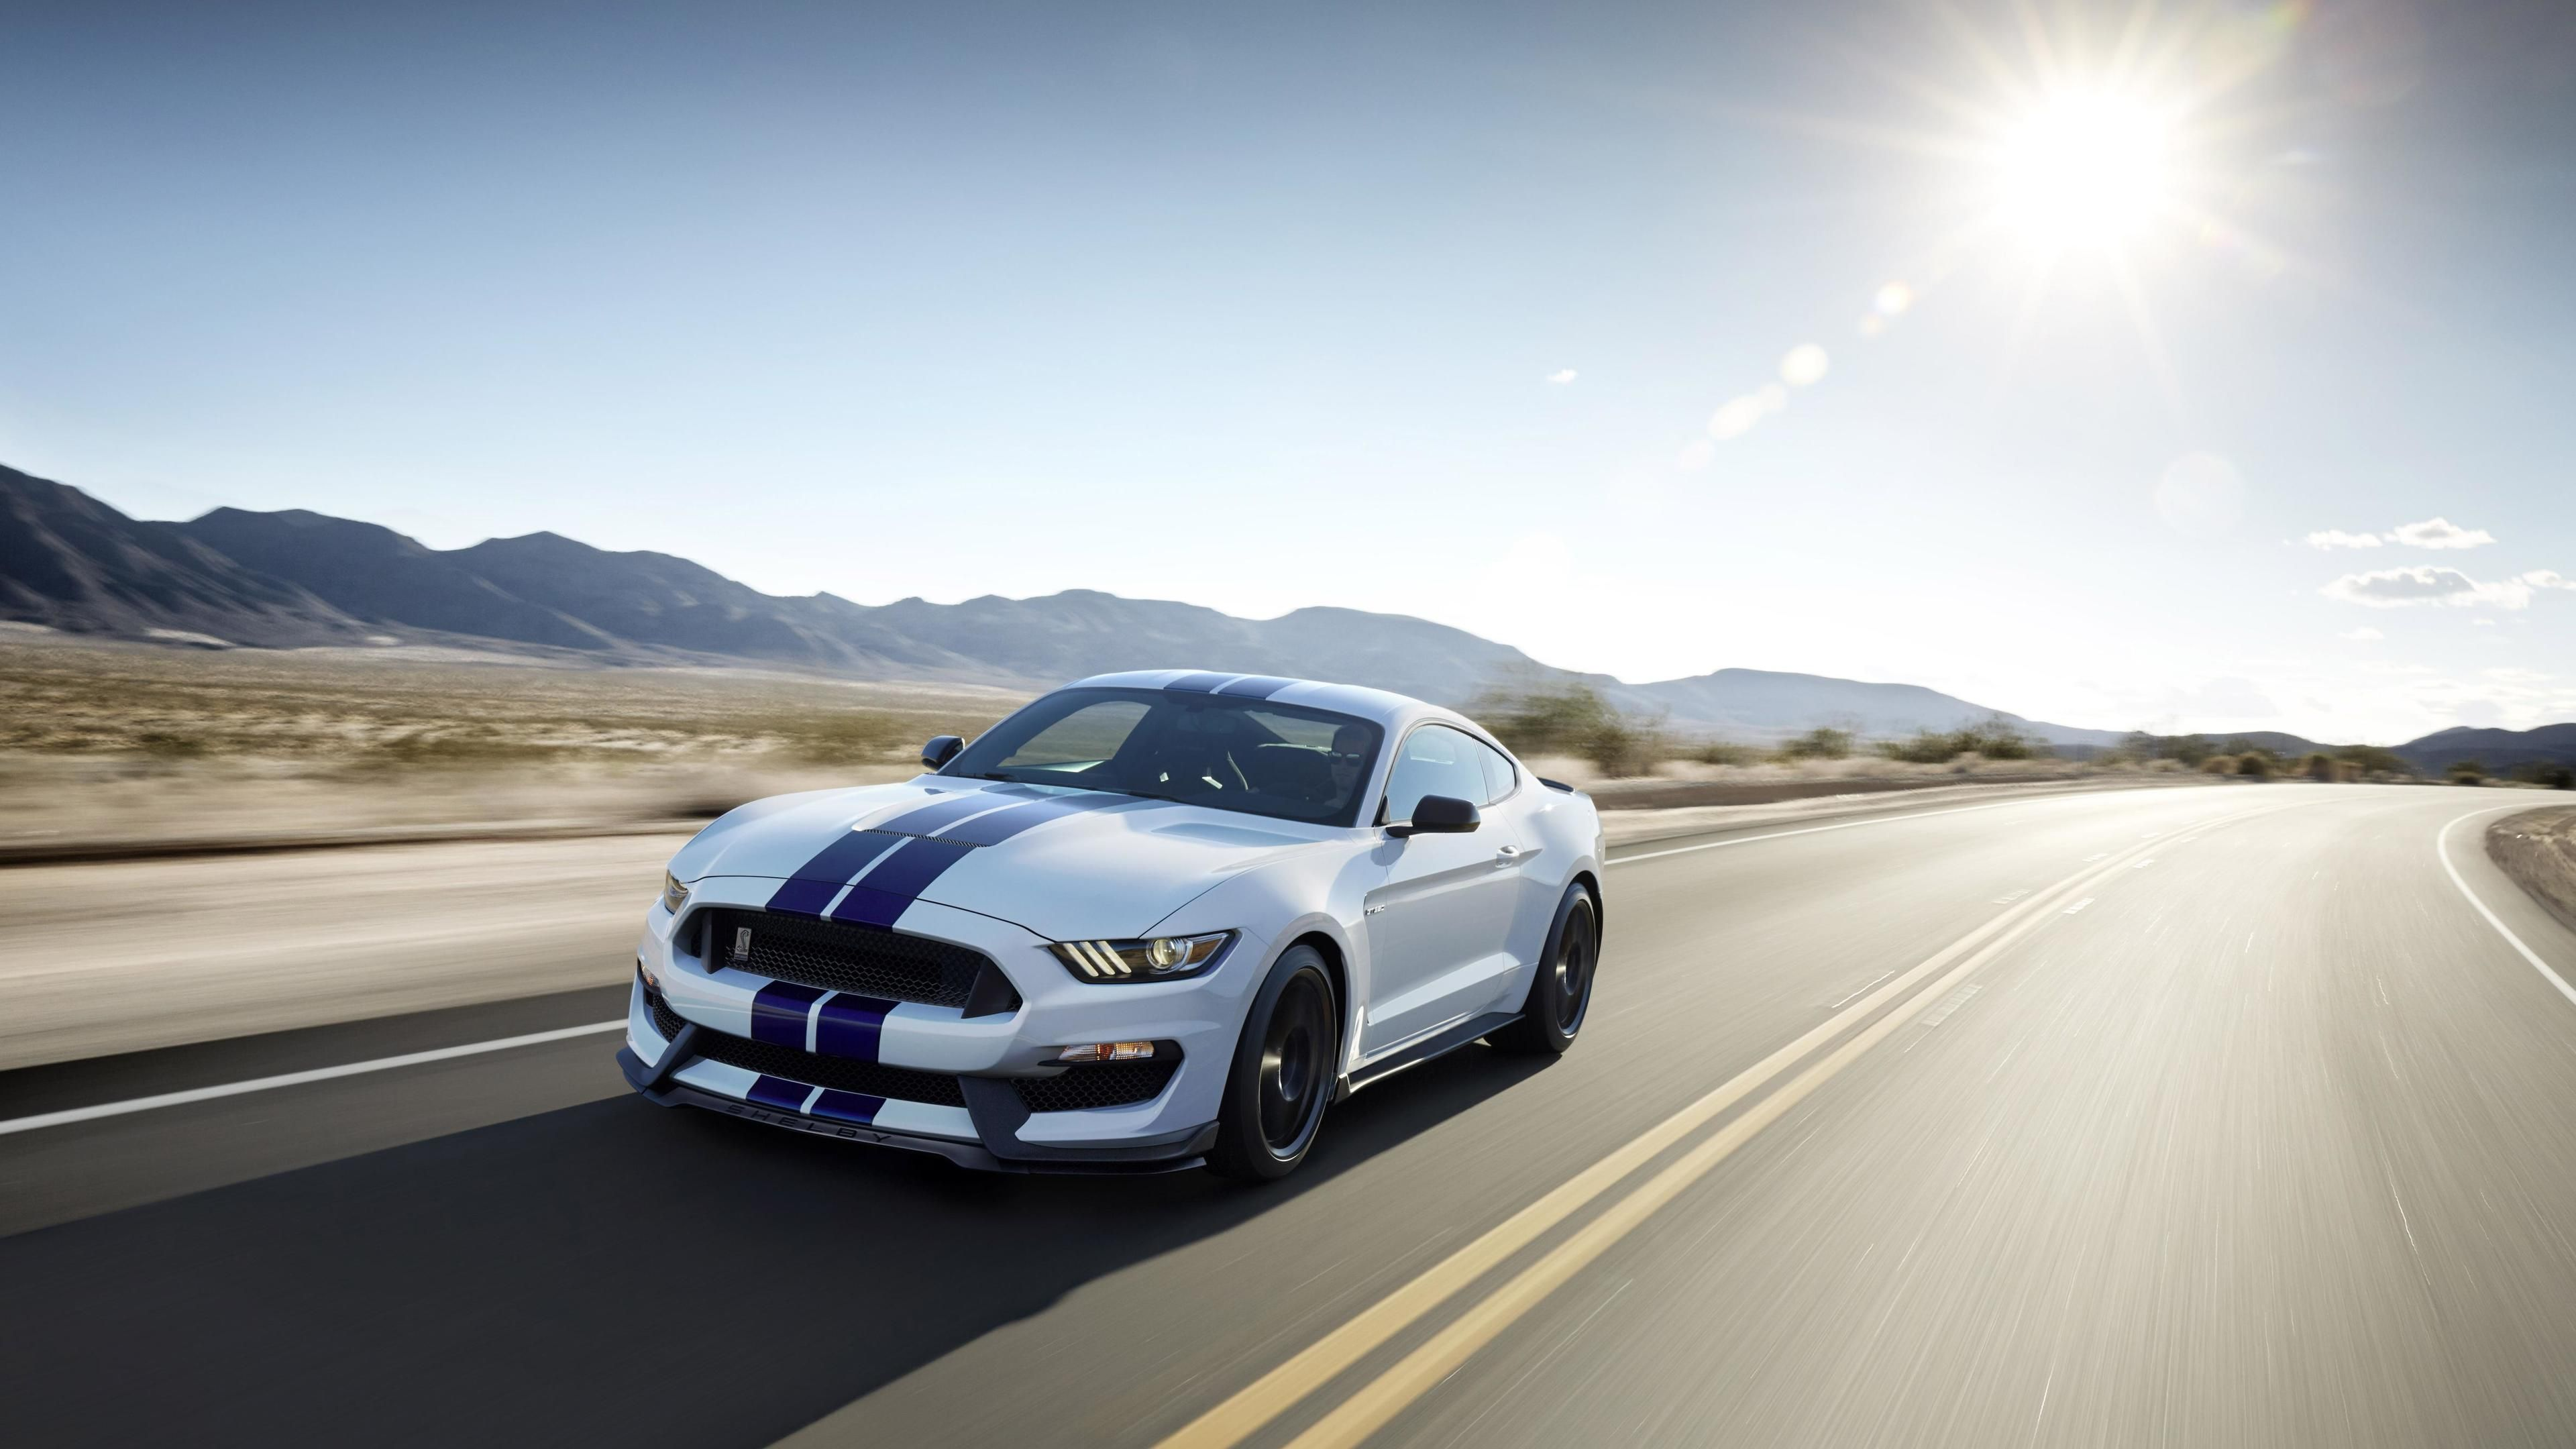 2019 Ford Mustang Shelby Gt350 4k Shelby Wallpapers Hd Wallpapers Ford Wallpapers Ford Mustang Wallp Mustang Wallpaper Ford Mustang Wallpaper Mustang Shelby